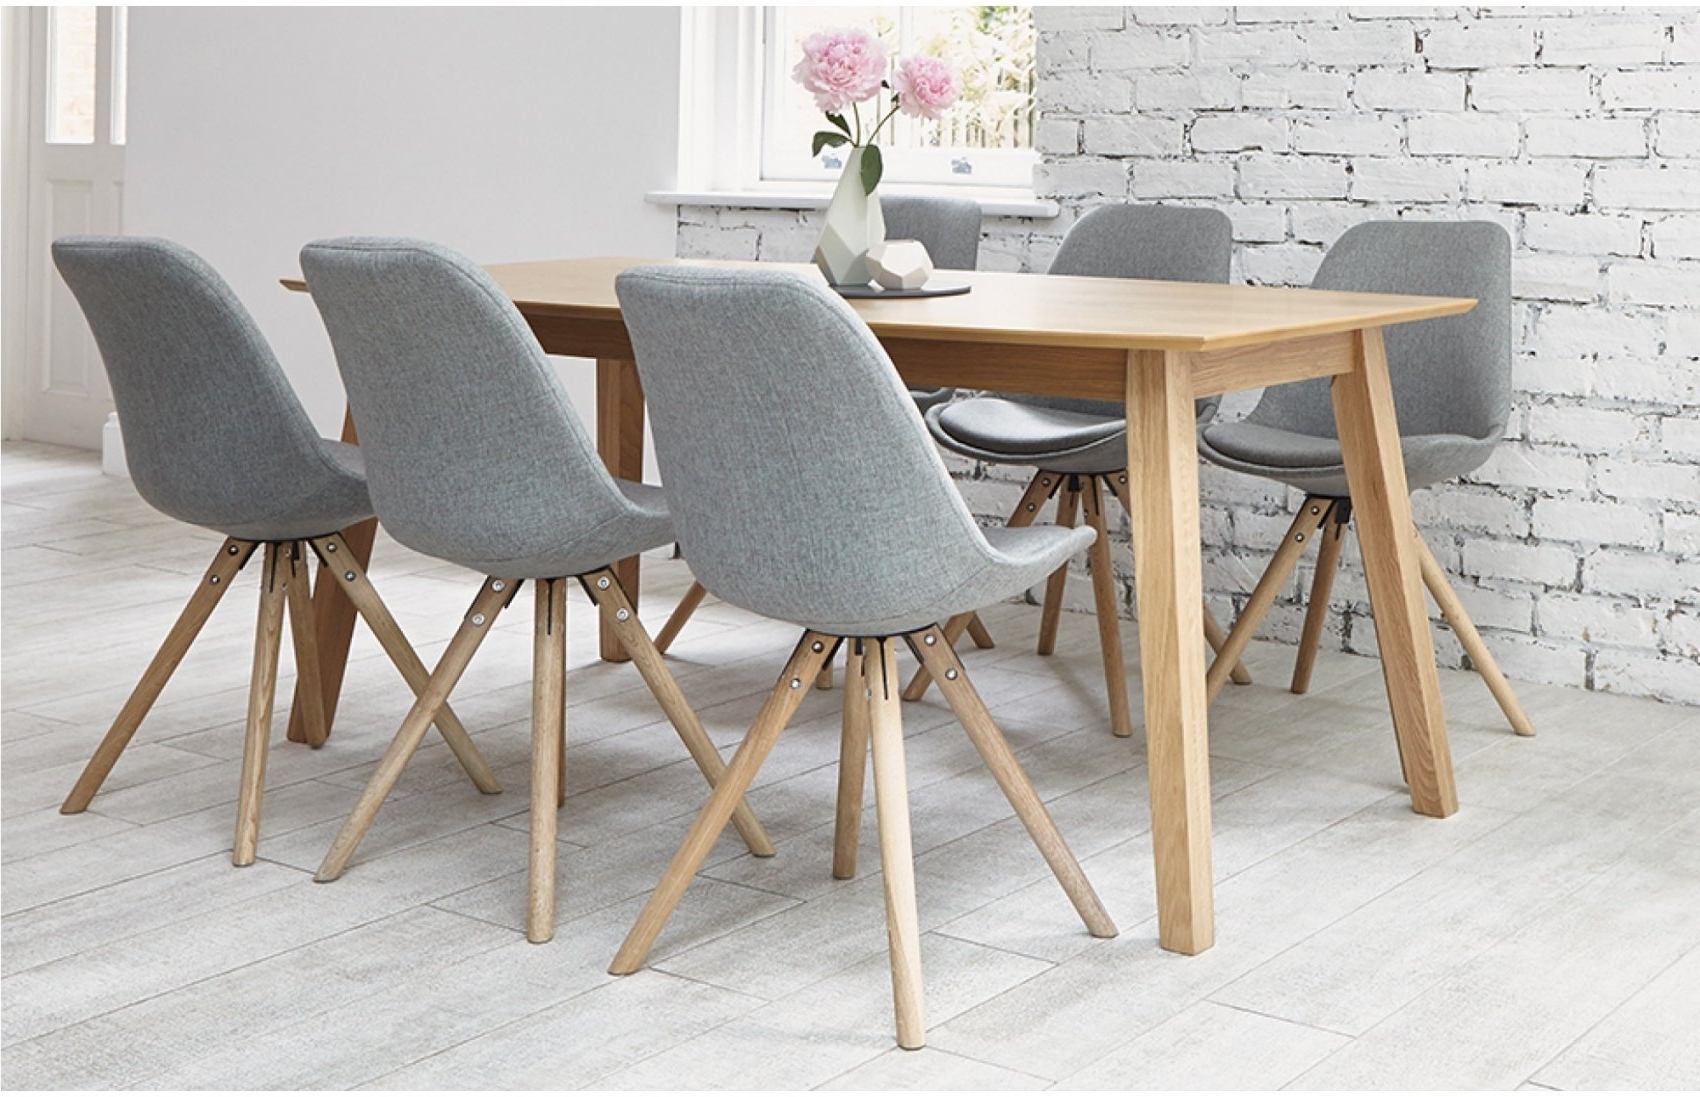 6 Seater Dining Table Sets – Castrophotos With Regard To Widely Used 6 Seat Dining Table Sets (Gallery 20 of 25)